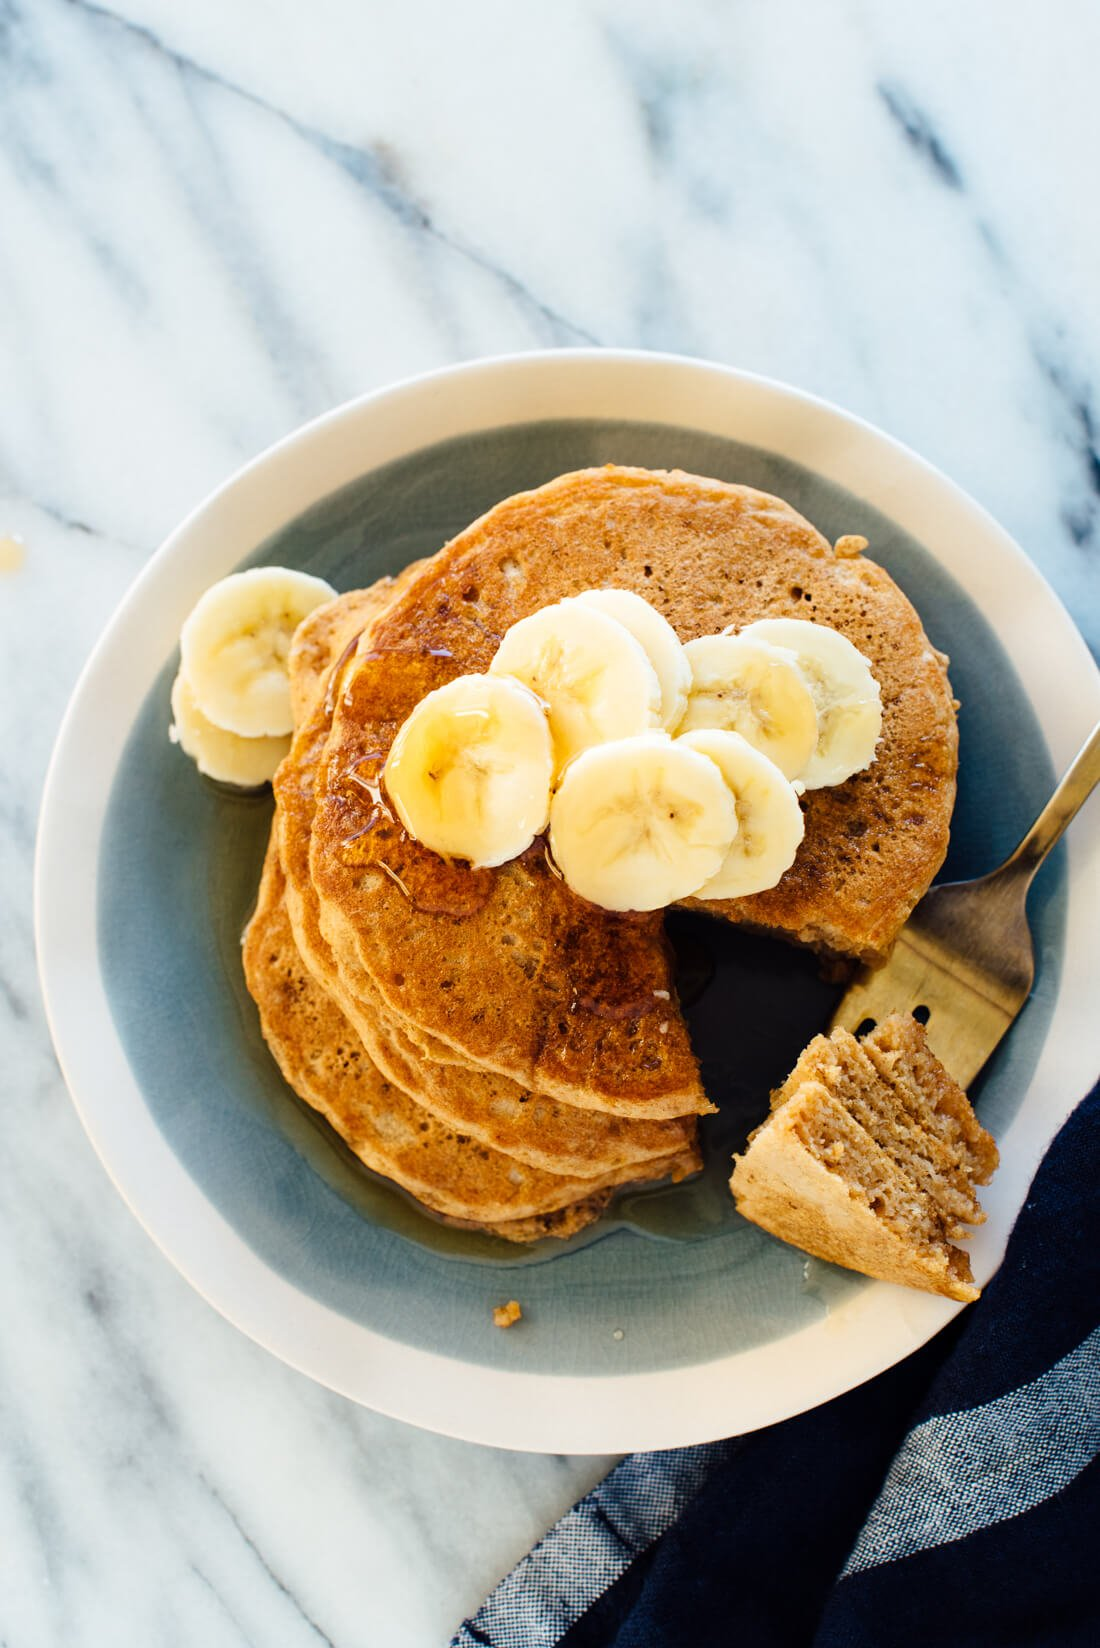 Absolutely delicious whole wheat pancakes recipe! I like mine with maple syrup and bananas on top.